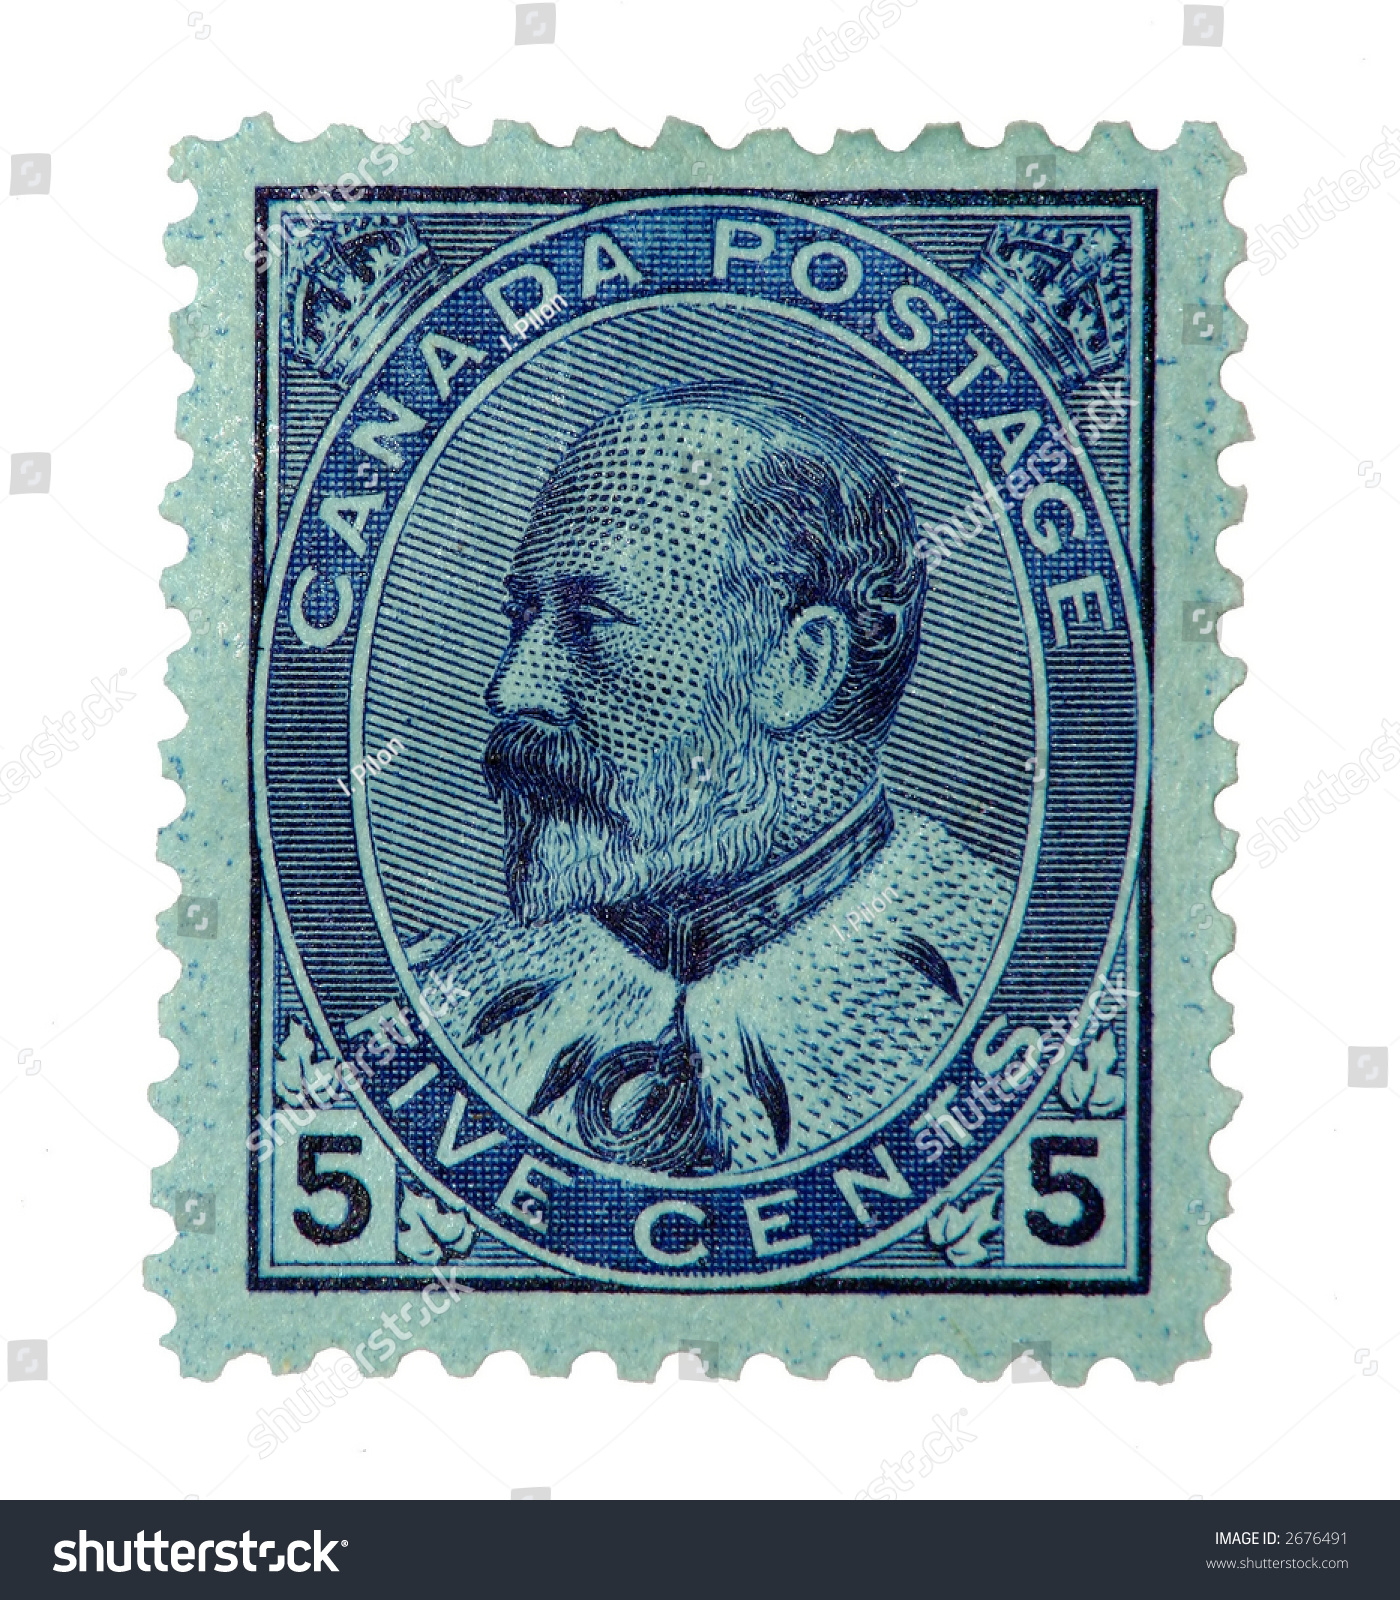 Canadian 5 Cent Postage Stamp Of King Edward VIII Printed In 1903